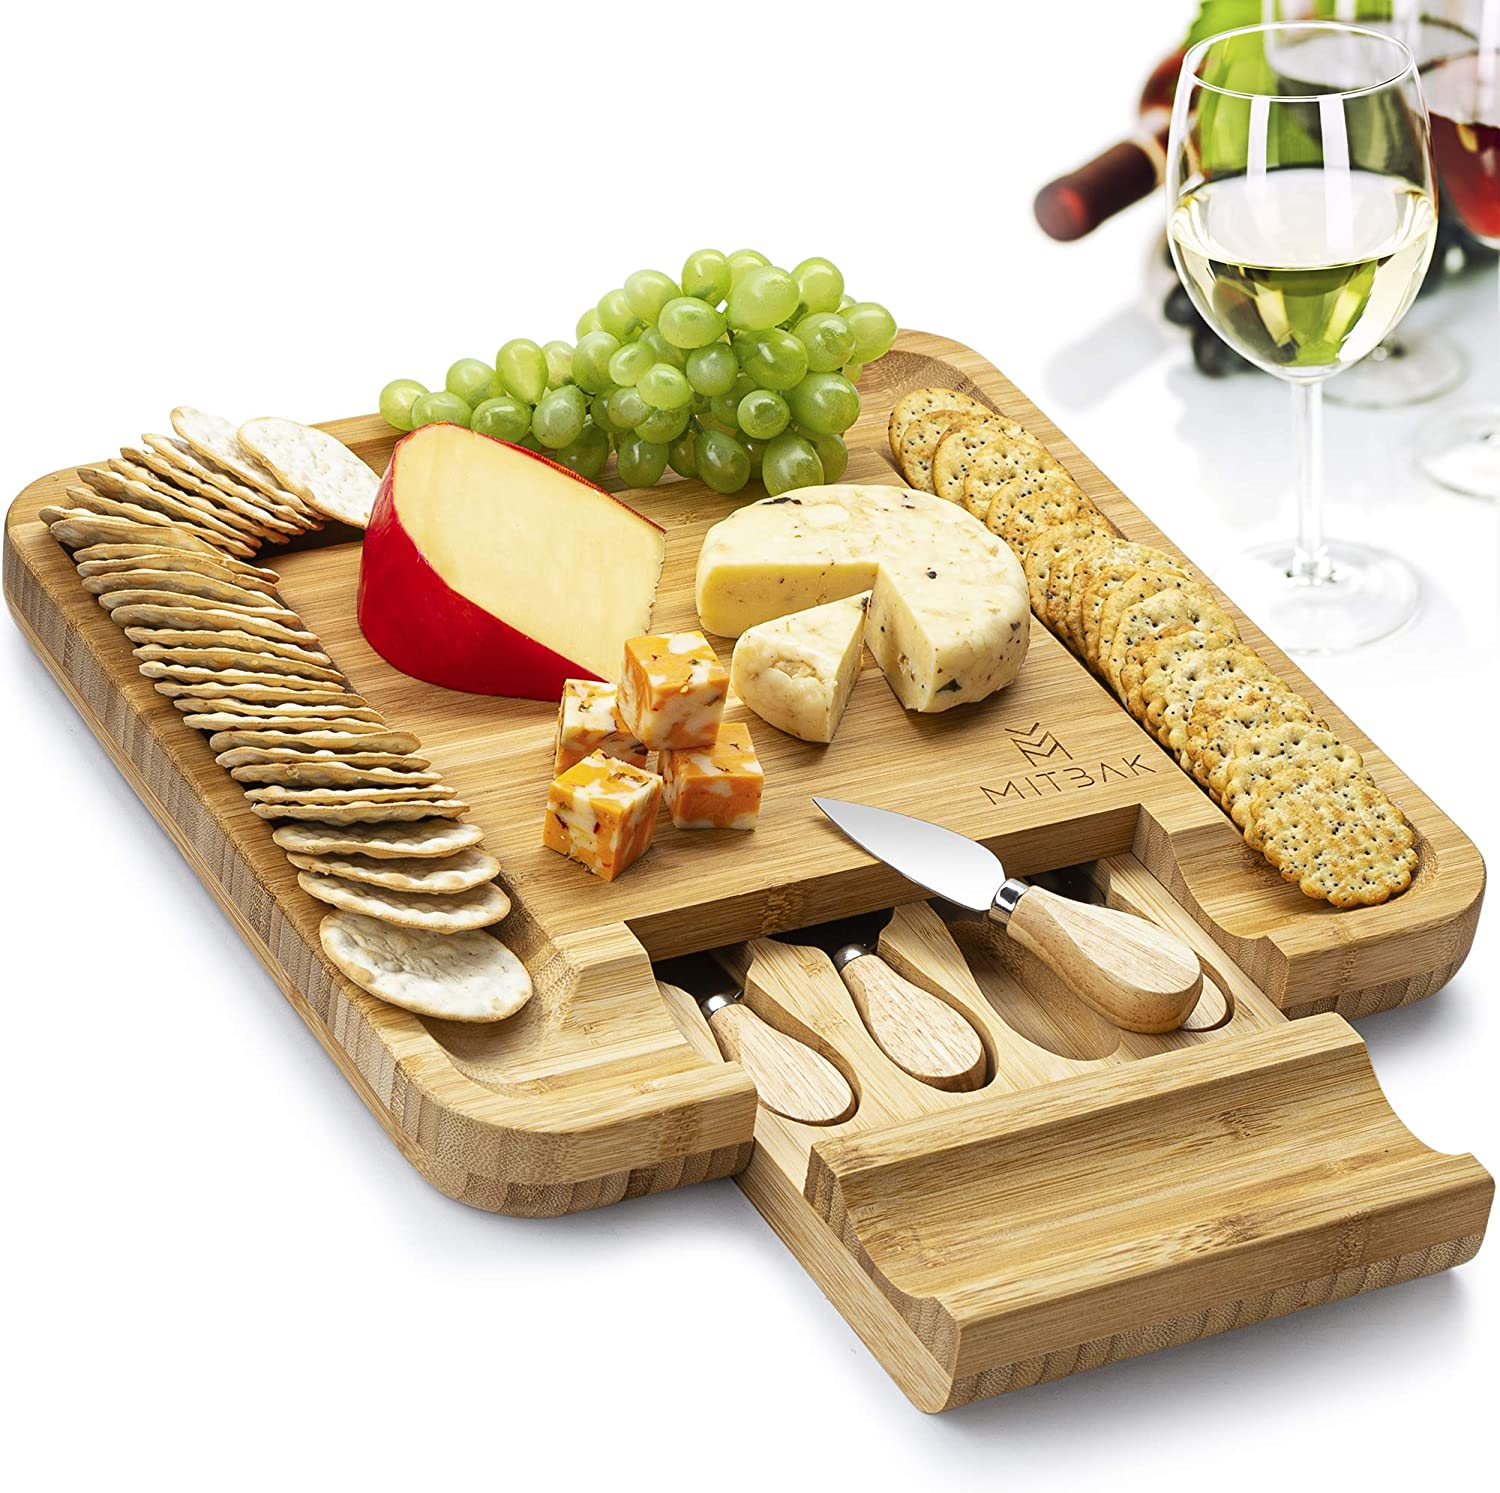 Mitbak Charcuterie Board Tray with 4 Cheese Knives   Bamboo Cheese Board Serving Tray   Cutting Board Platter Great Gift For Christmas, Anniversary, Bridal Shower, Housewarming   13 x 13 x 1.5 Inches